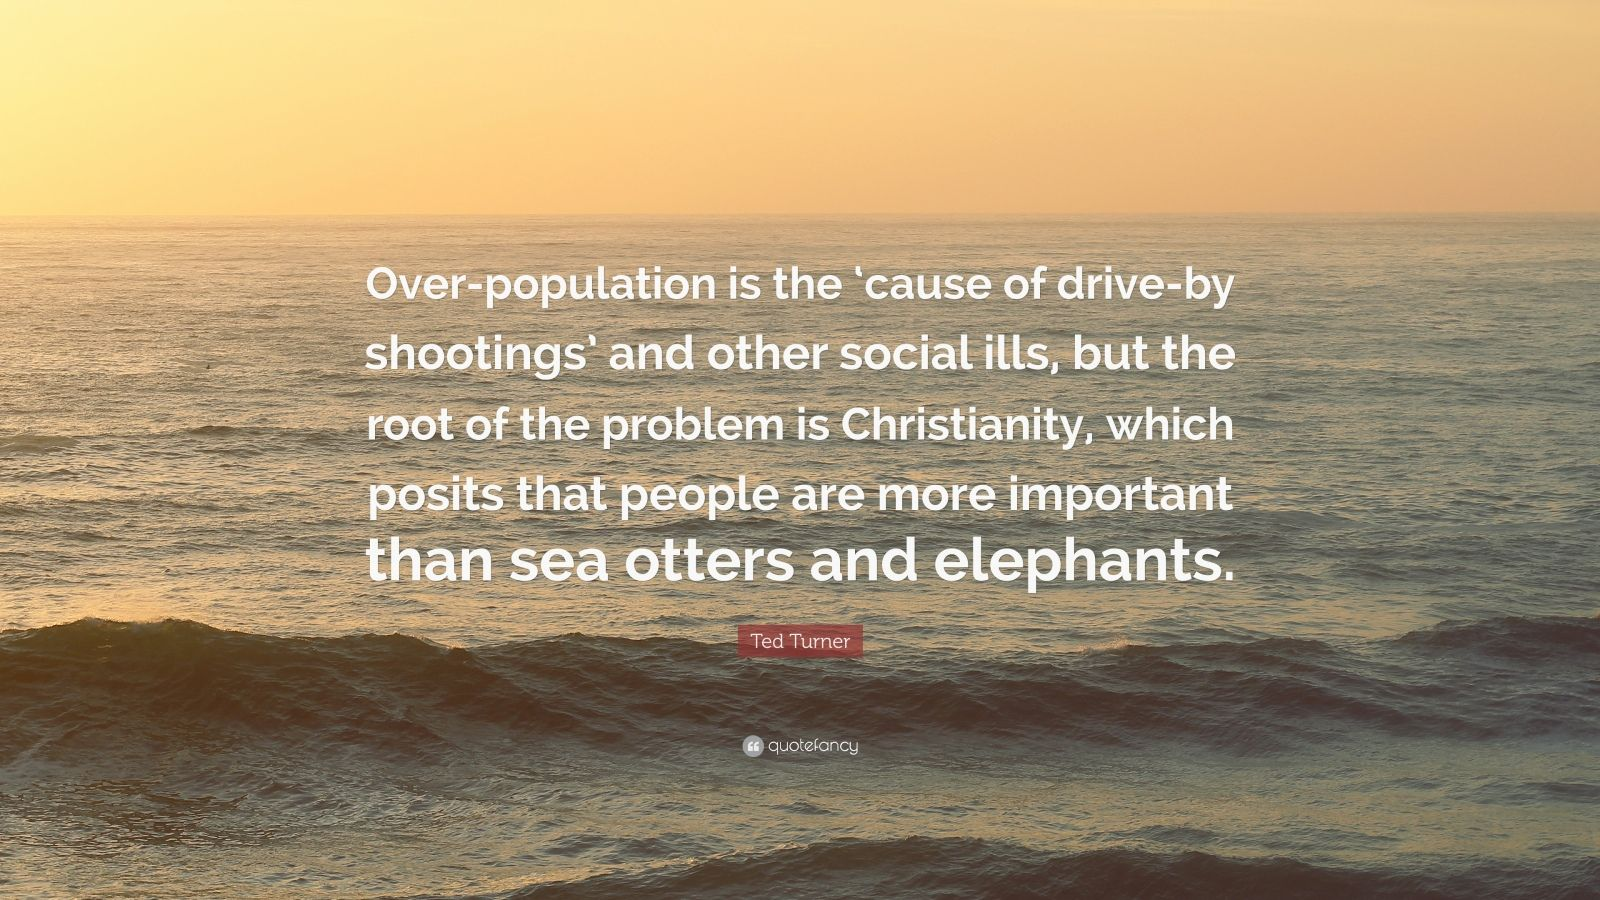 """Ted Turner Quote: """"Over-population is the 'cause of drive-by shootings' and other social ills, but the root of the problem is Christianity, which posits that people are more important than sea otters and elephants."""""""